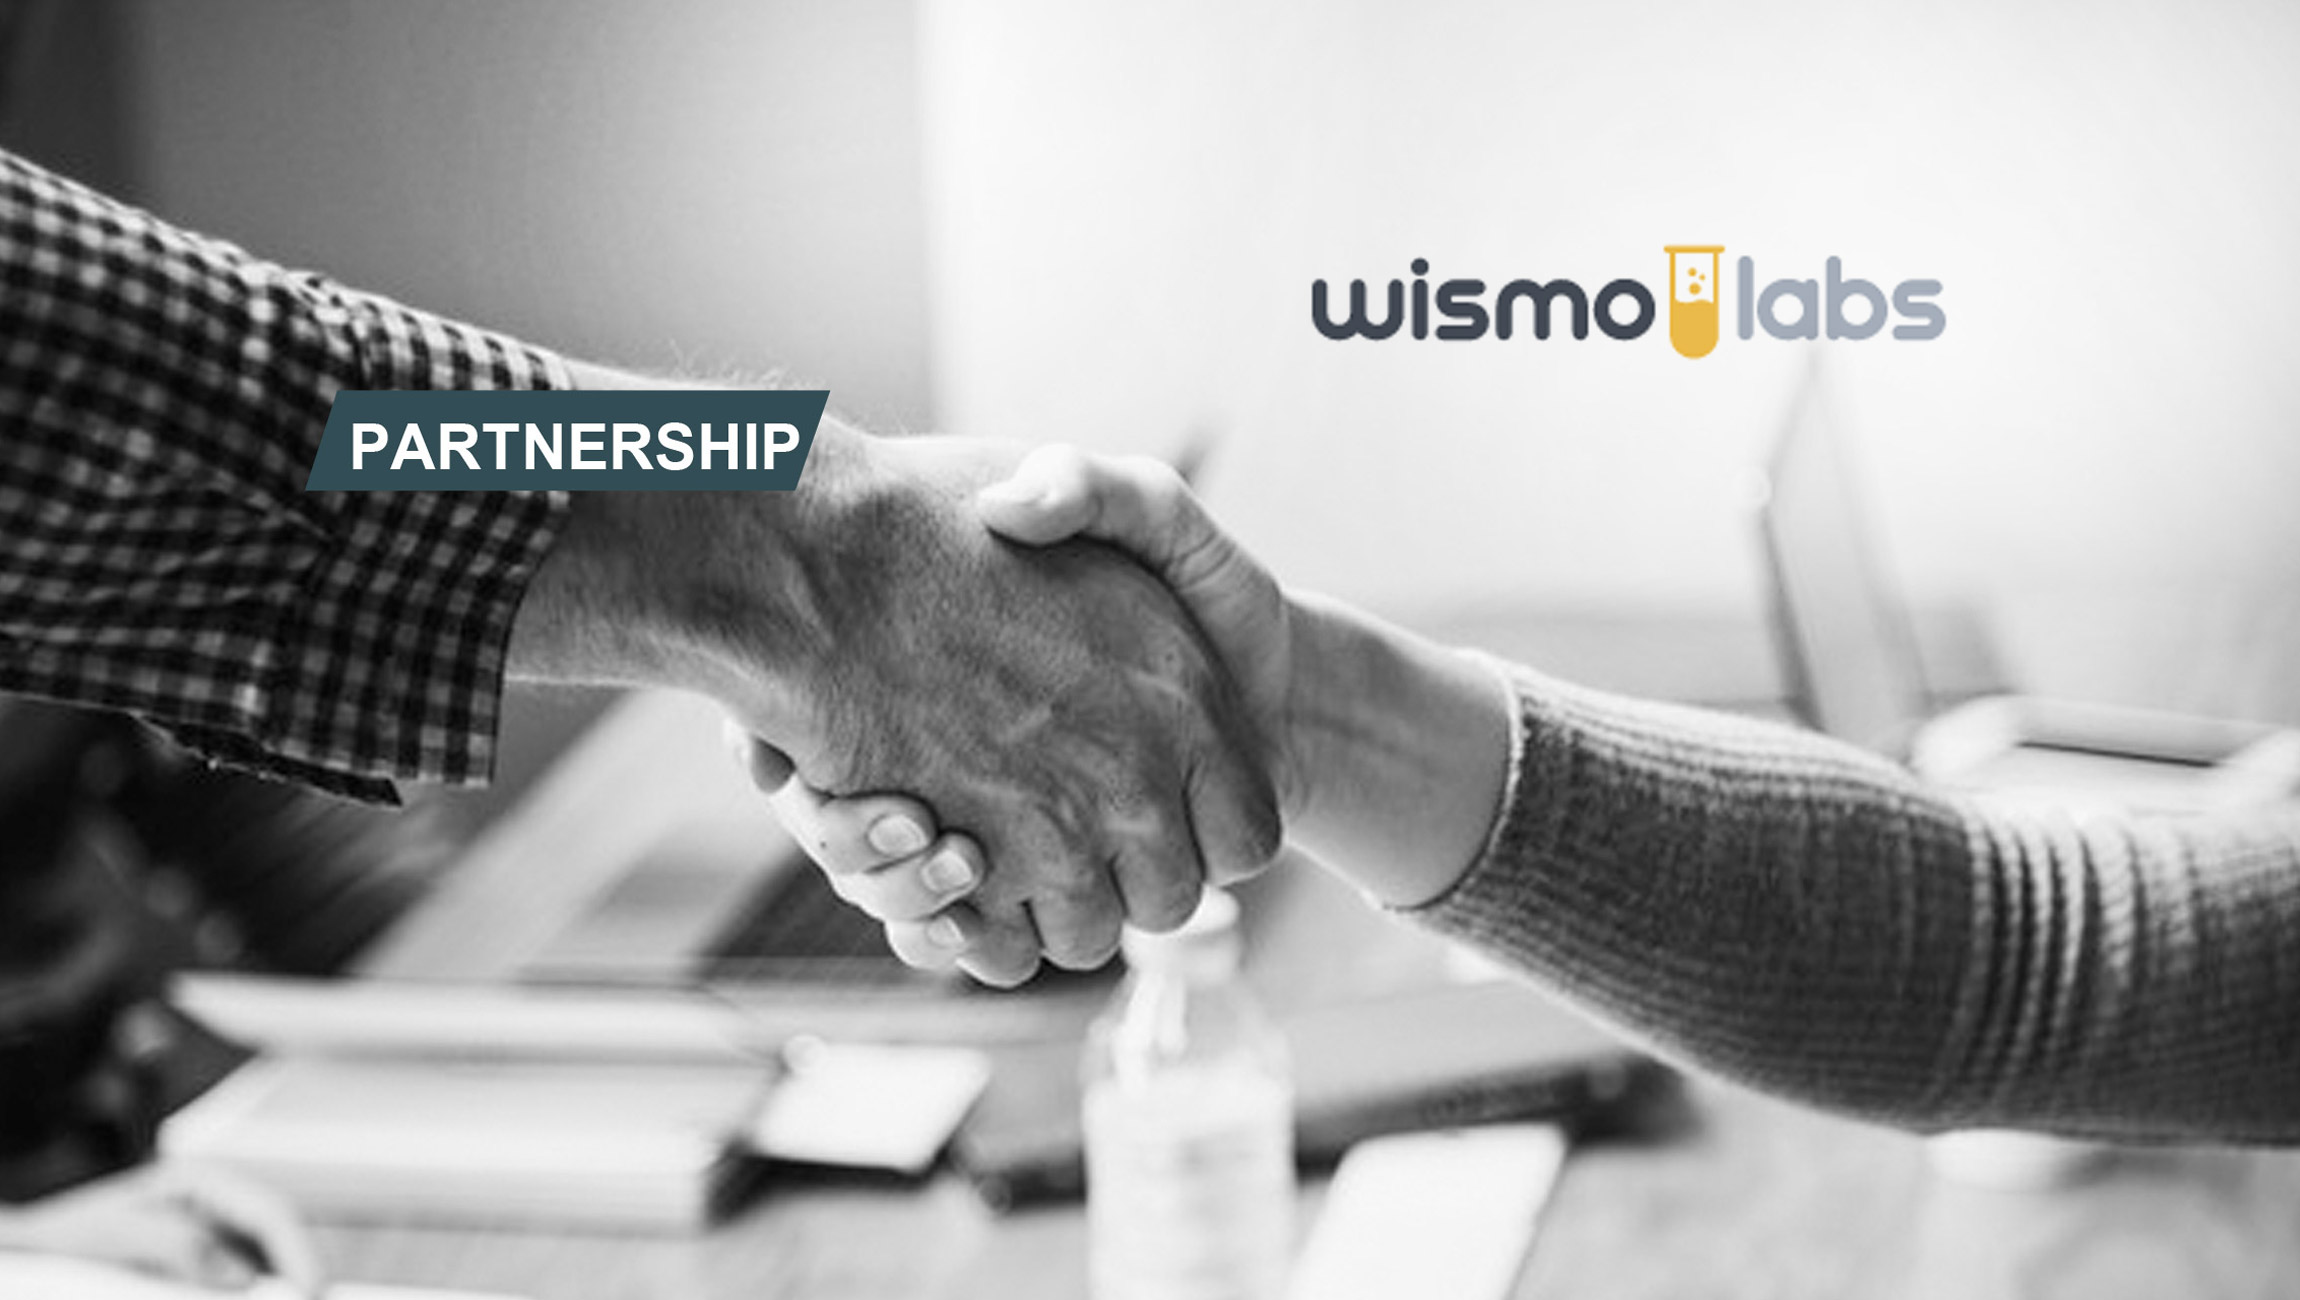 WISMOlabs and Search Nurture Partner to Close the Loop Between Marketing & the Post-Purchase Experience 1